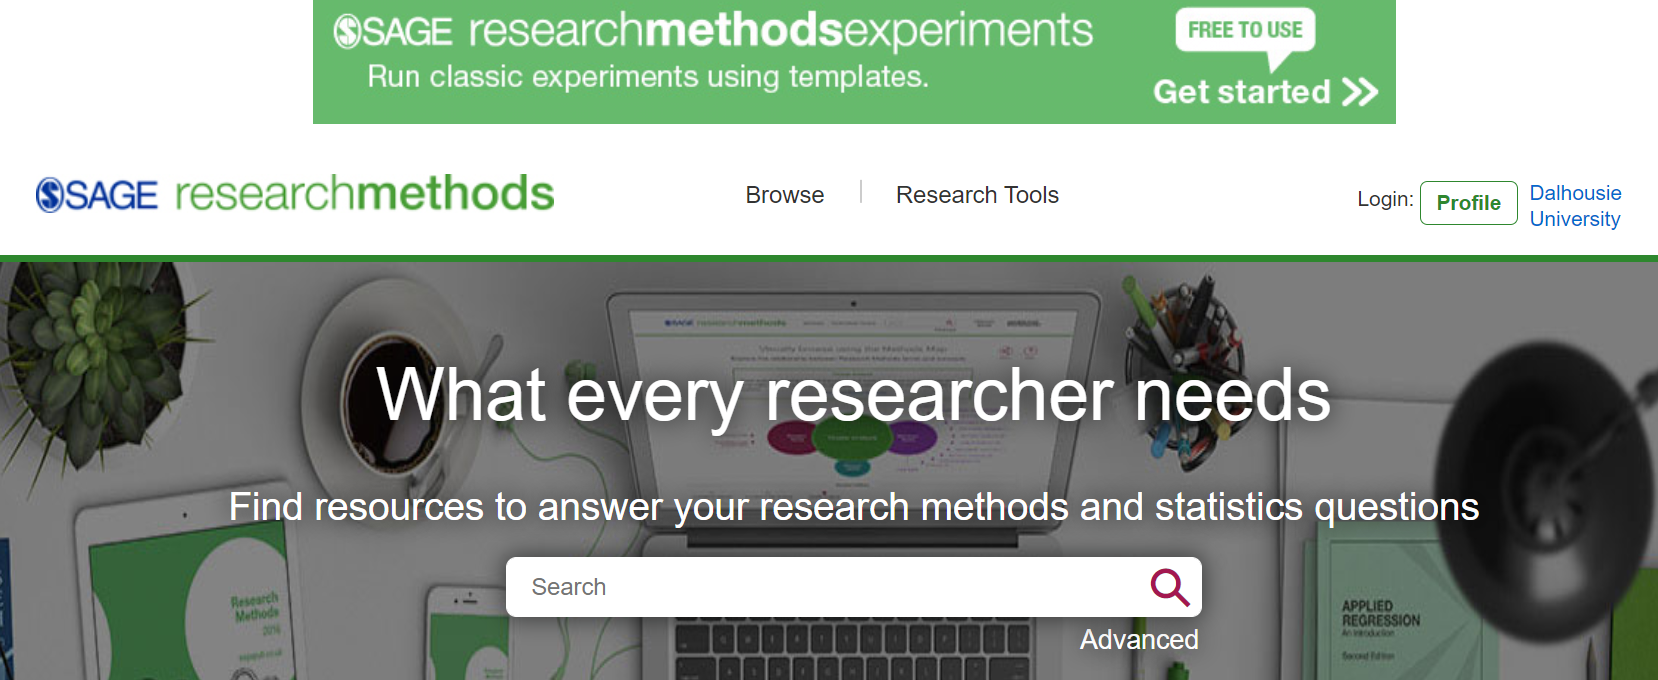 An image of the home page of SAGE Research Methods.